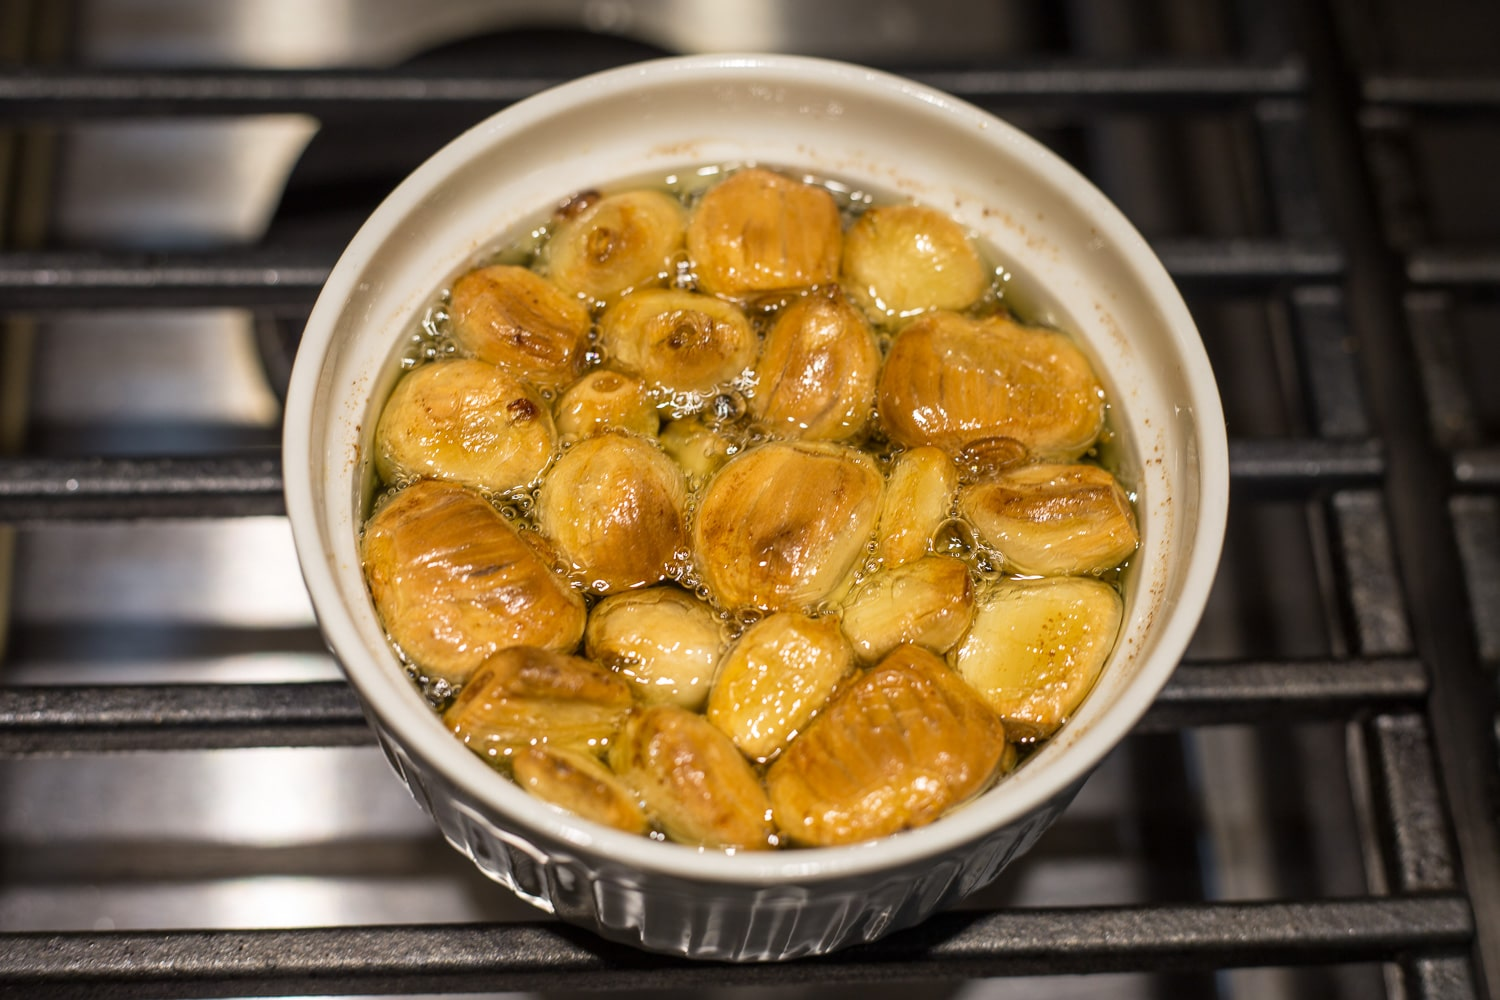 Use this succulent garlic confit to add wonderful flavor to vegetables, chicken, beef, sauces, or spreads! |artzyfoodie.com|